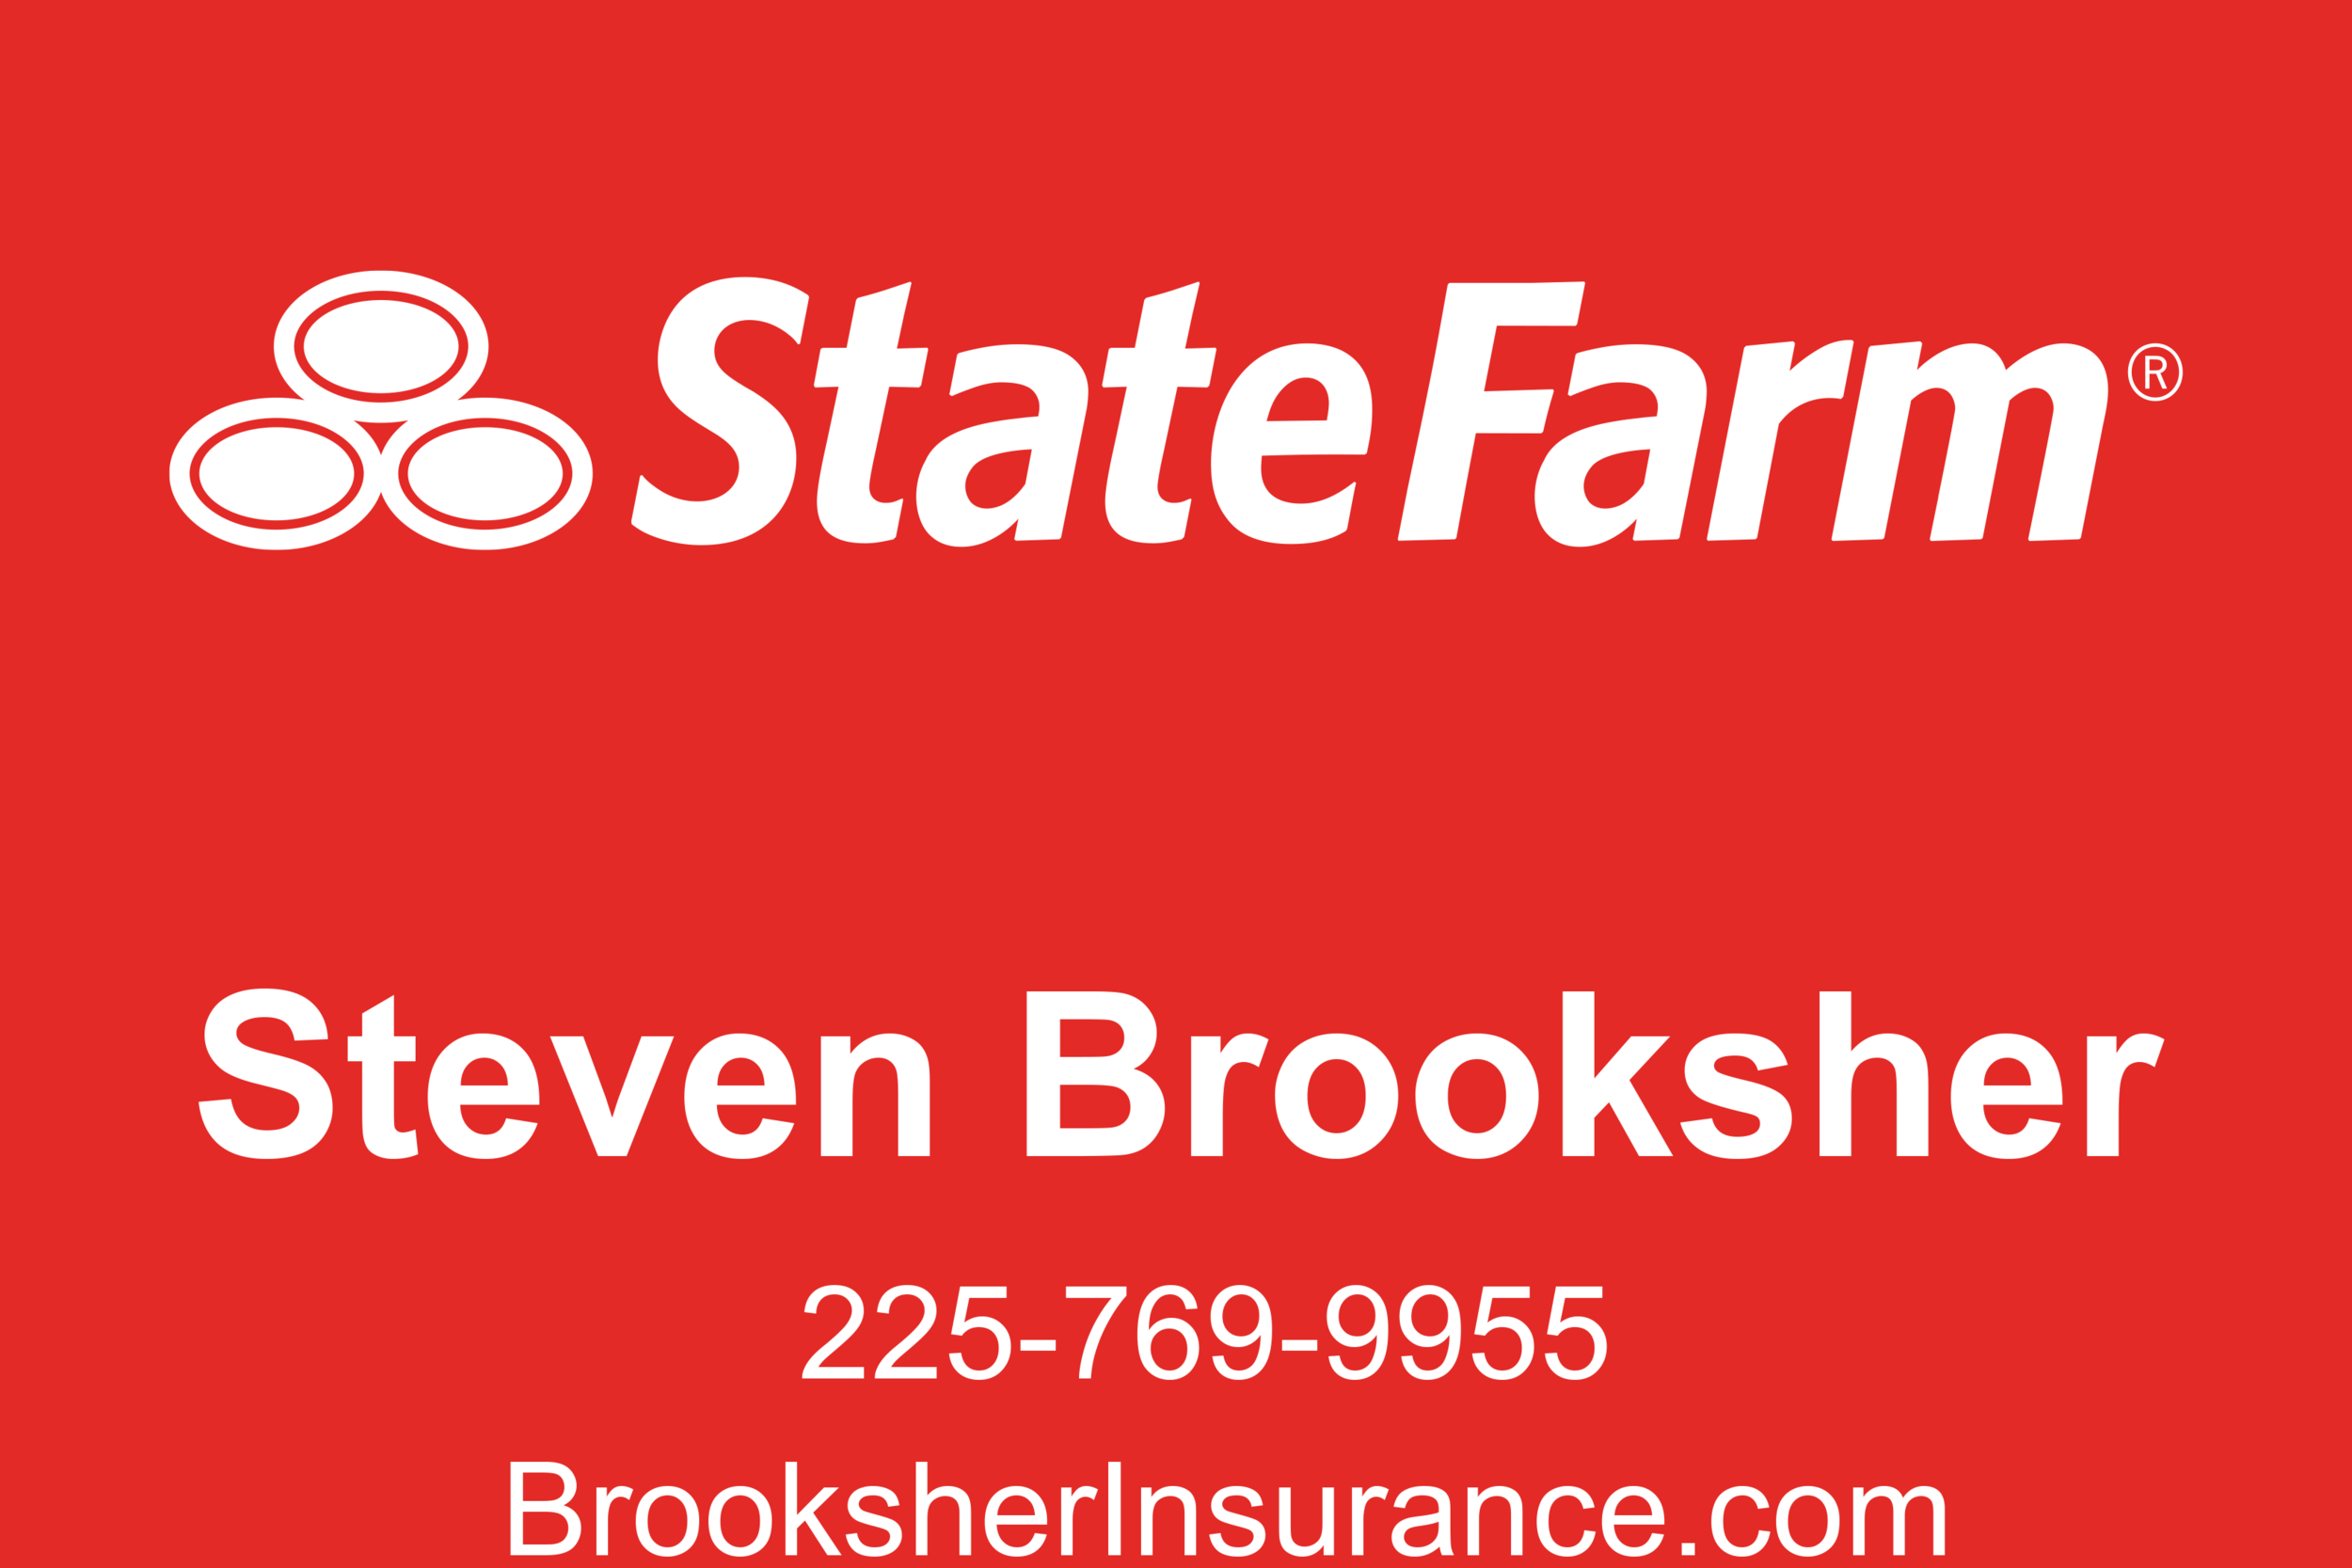 SF logo red with phone number and website.png